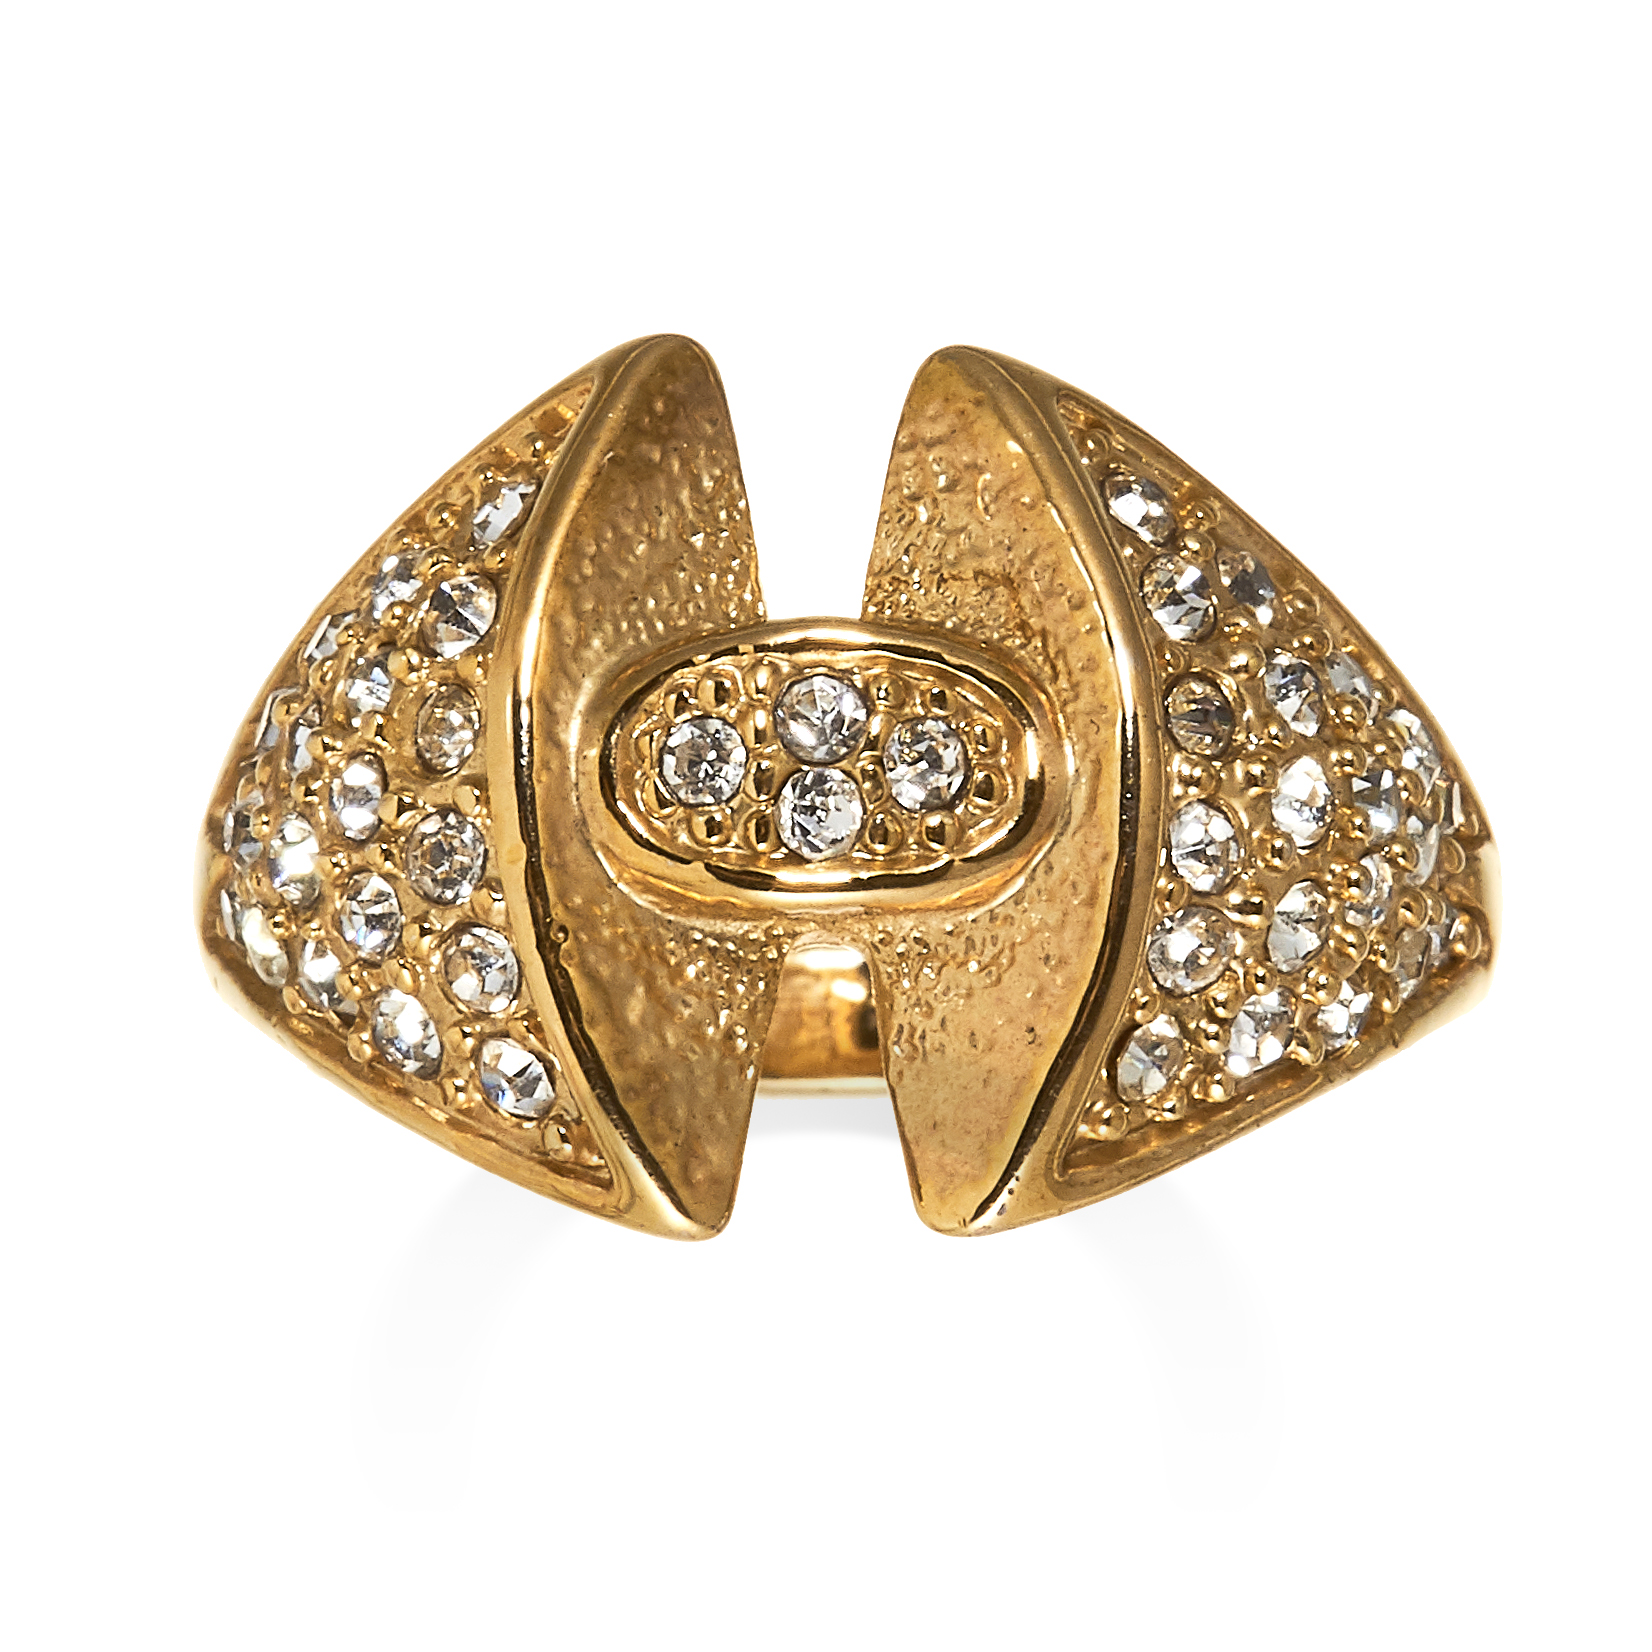 A DIAMOND DRESS RING in high carat yellow gold, the central oval motif set with round cut